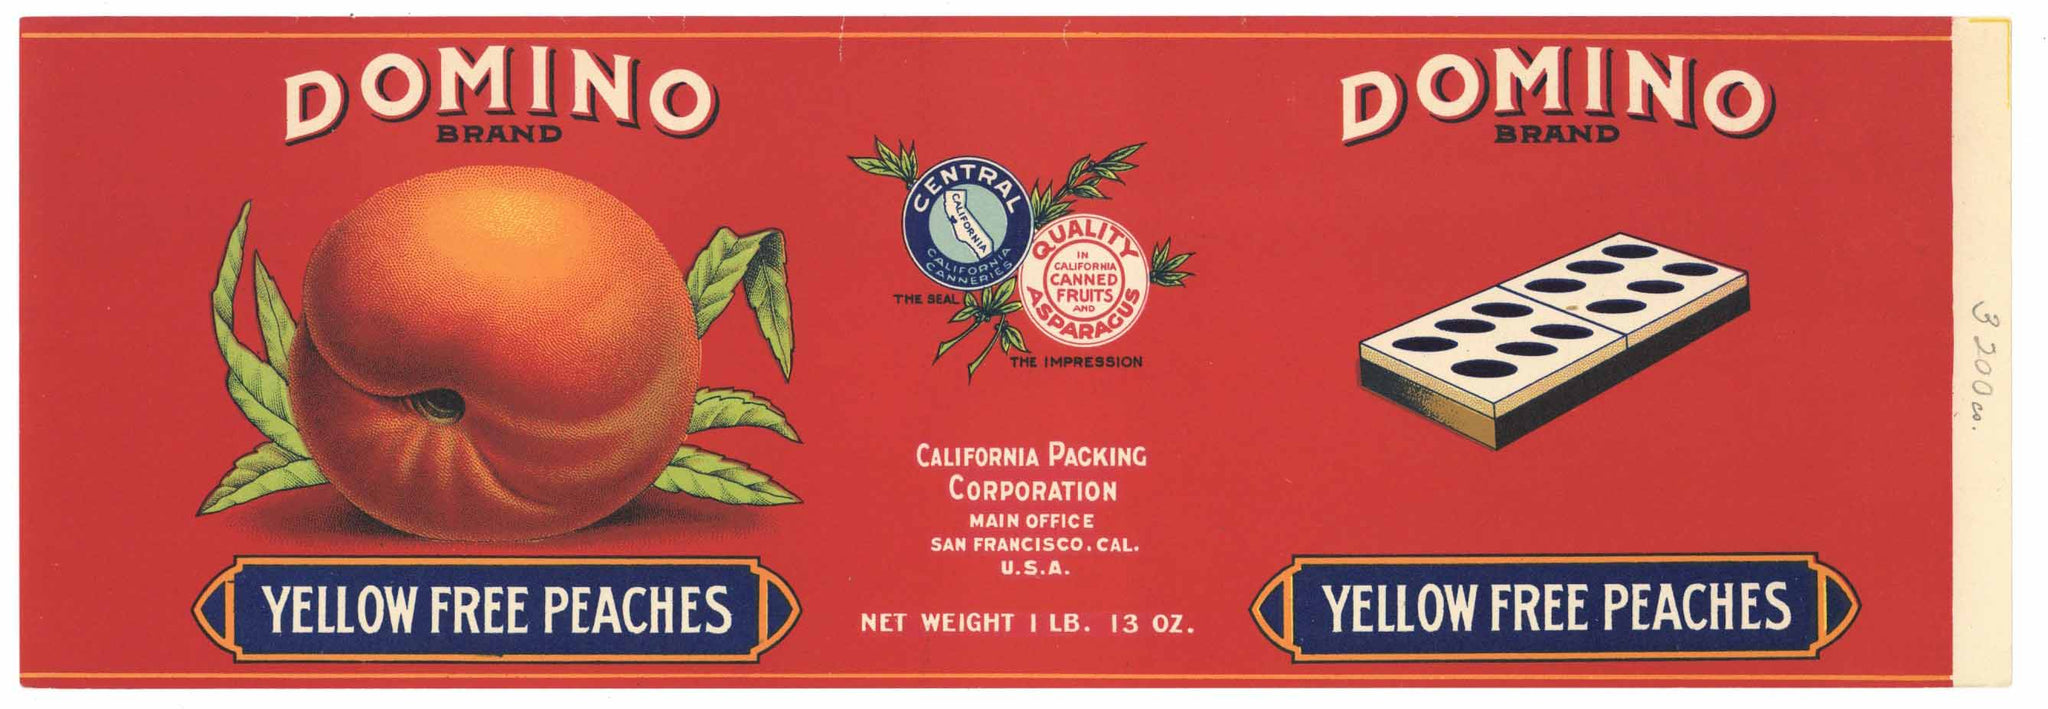 Domino Brand Vintage Peach Can Label